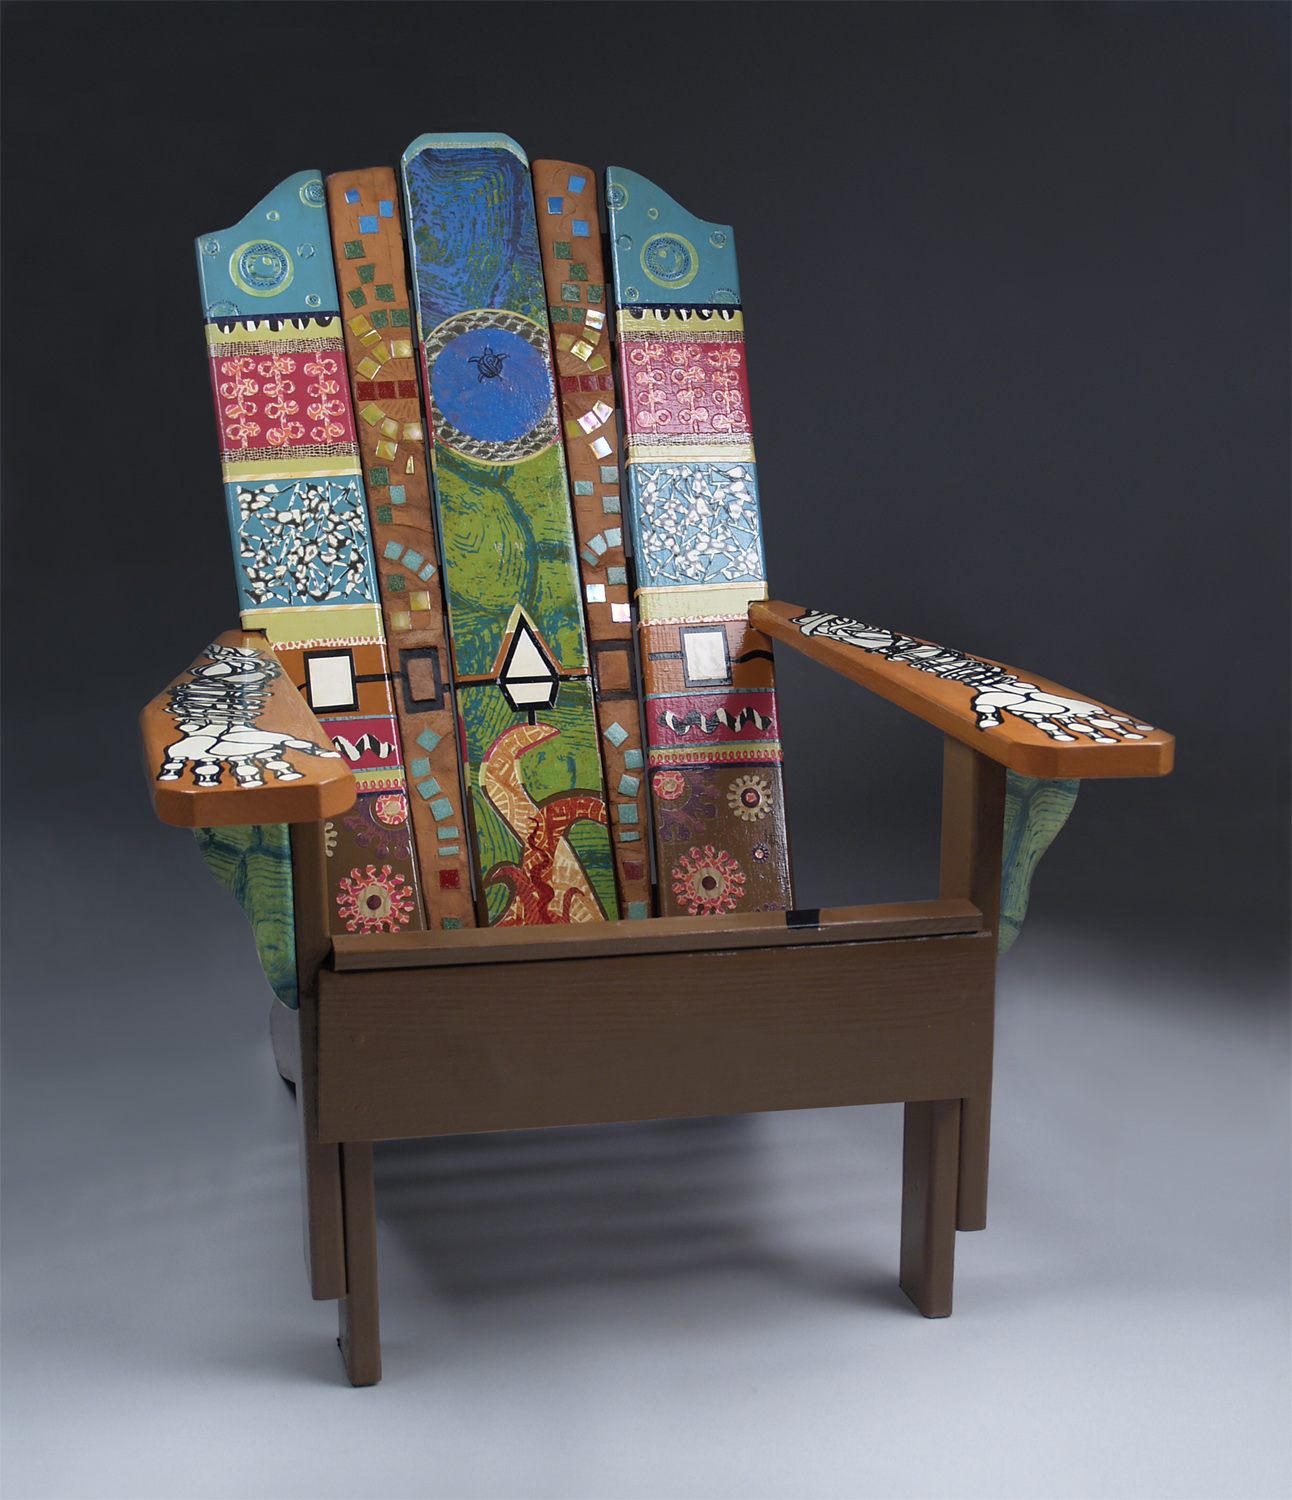 FLCC Connects: Faculty, students design chair for raffle